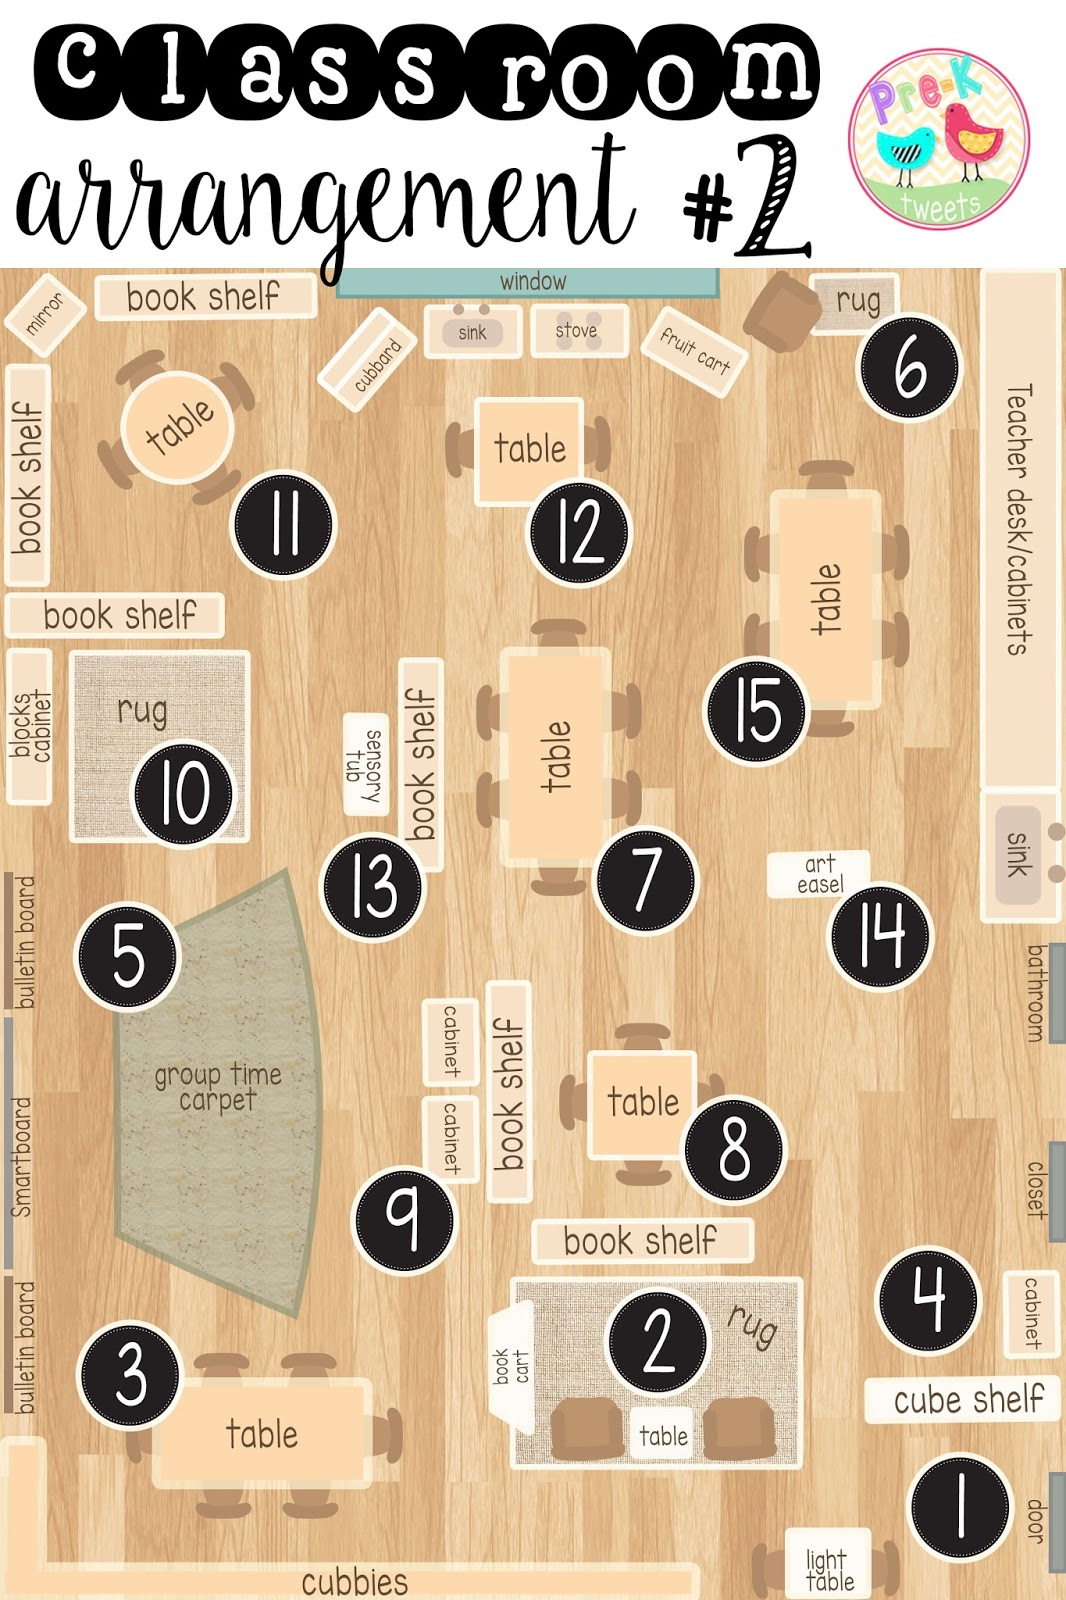 where should you put your book shelves your group time carpet your storage  [ 1066 x 1600 Pixel ]